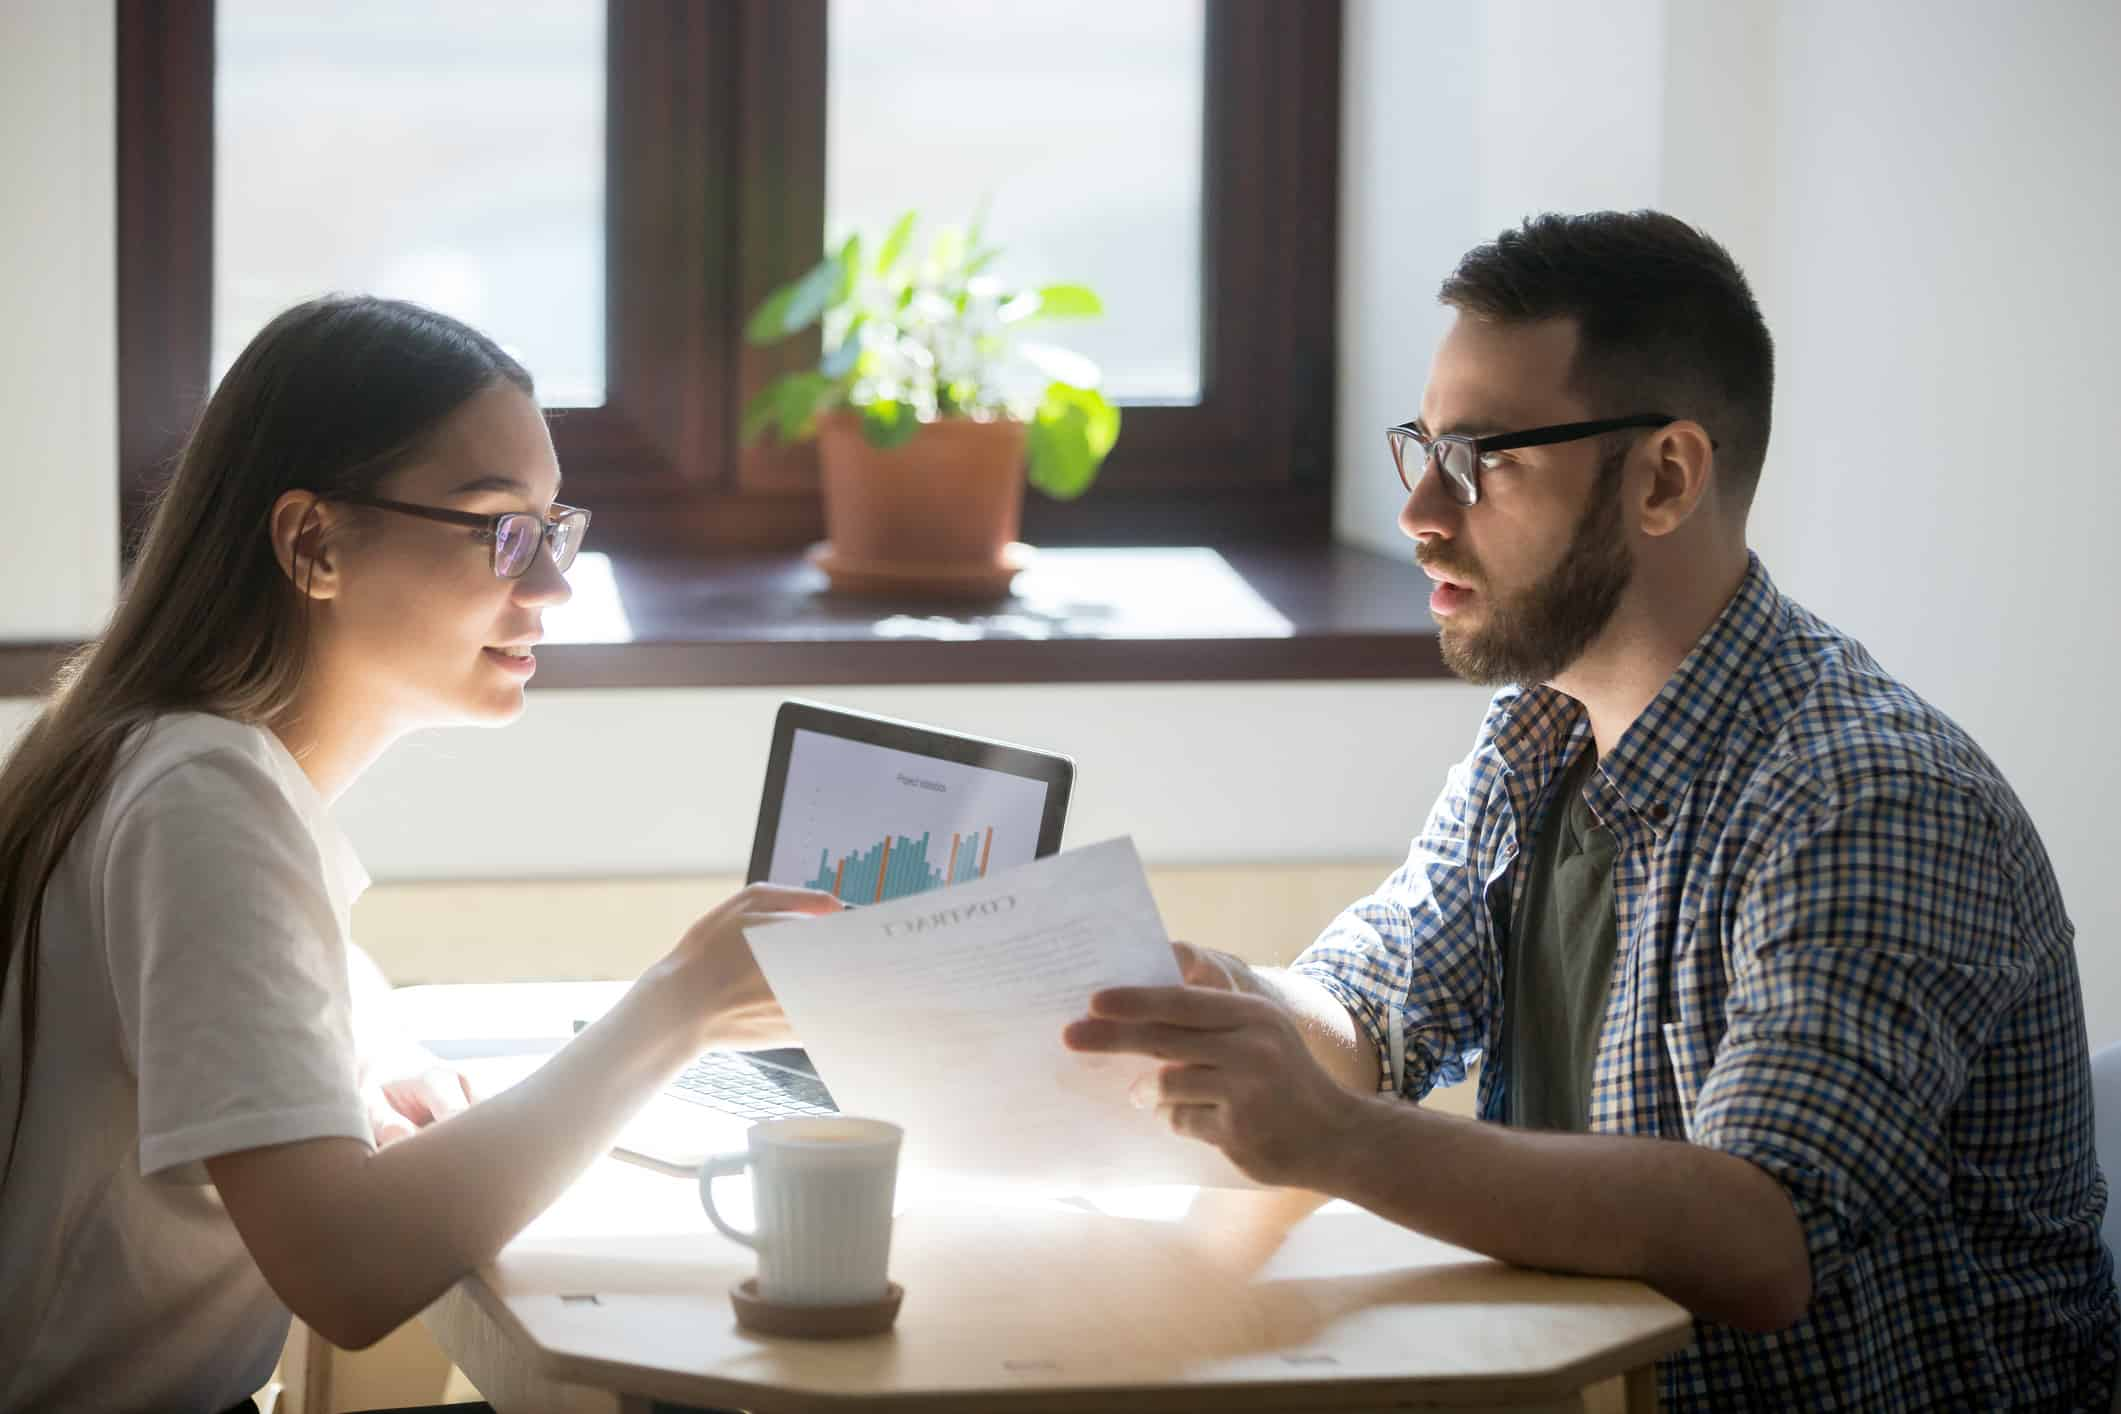 Millennial anxious about buying a home discusses financing